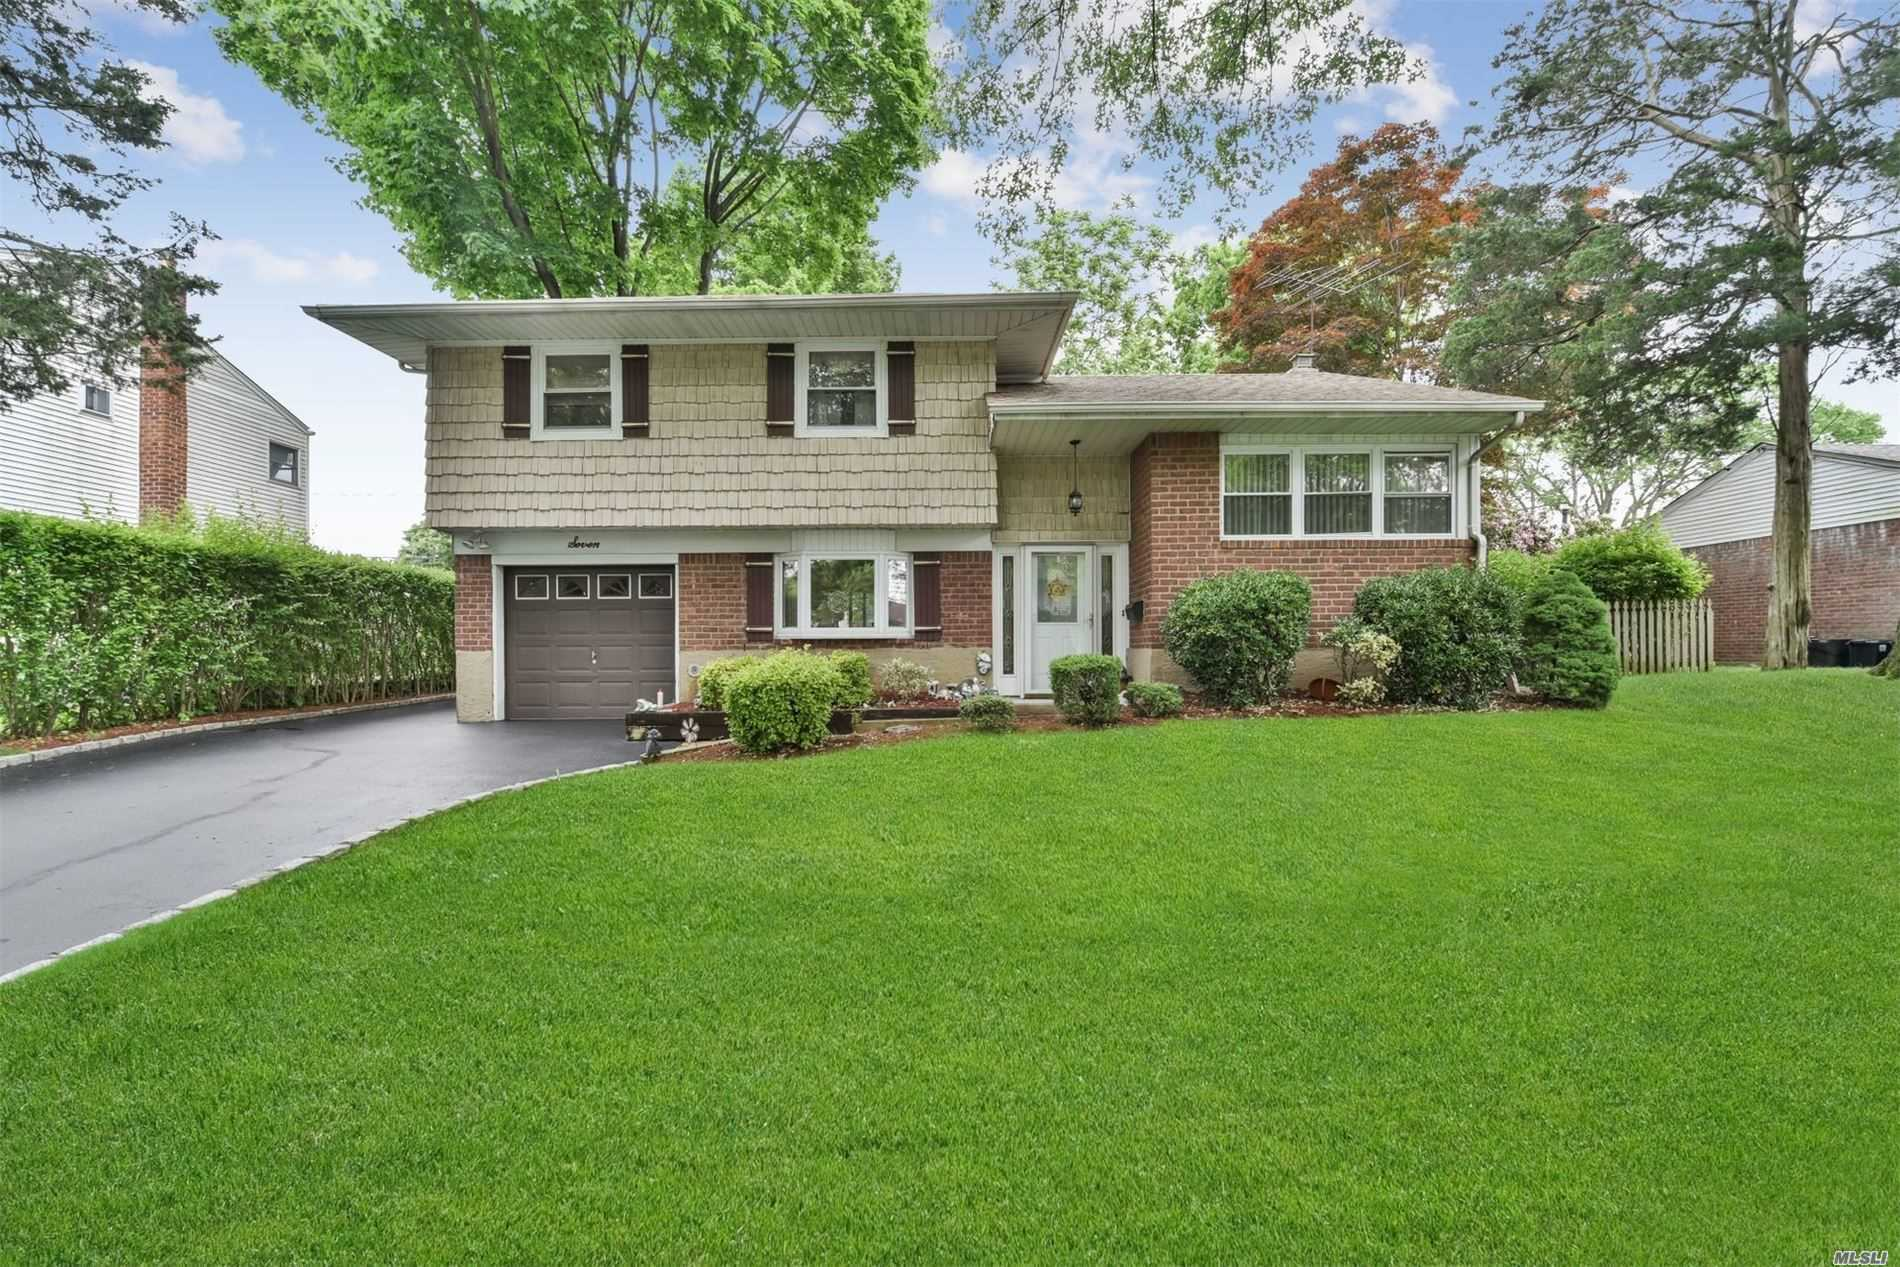 7 Rensselaer Dr - Commack, New York